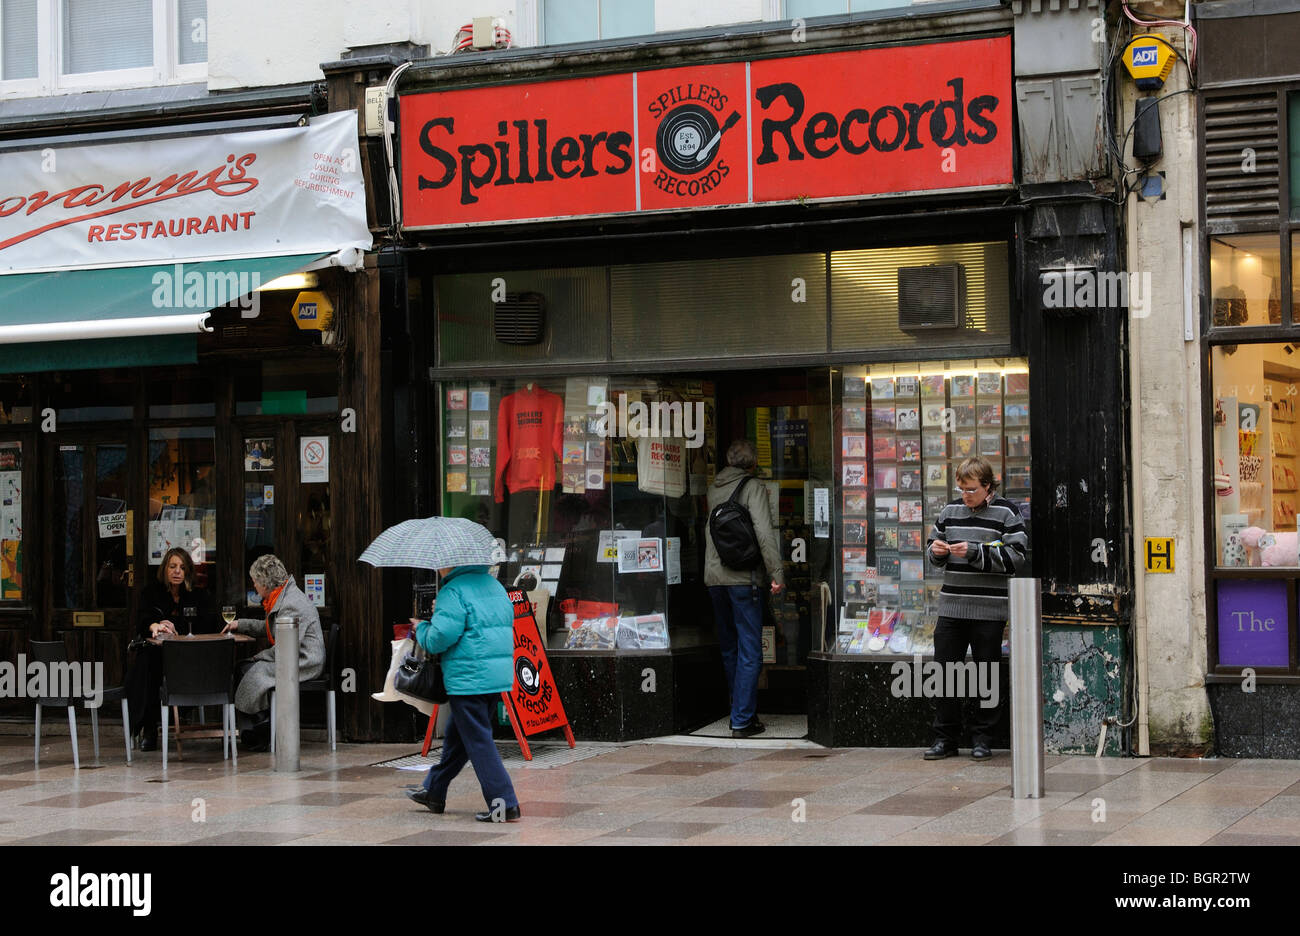 Old Record Shop Stock Photos Amp Old Record Shop Stock